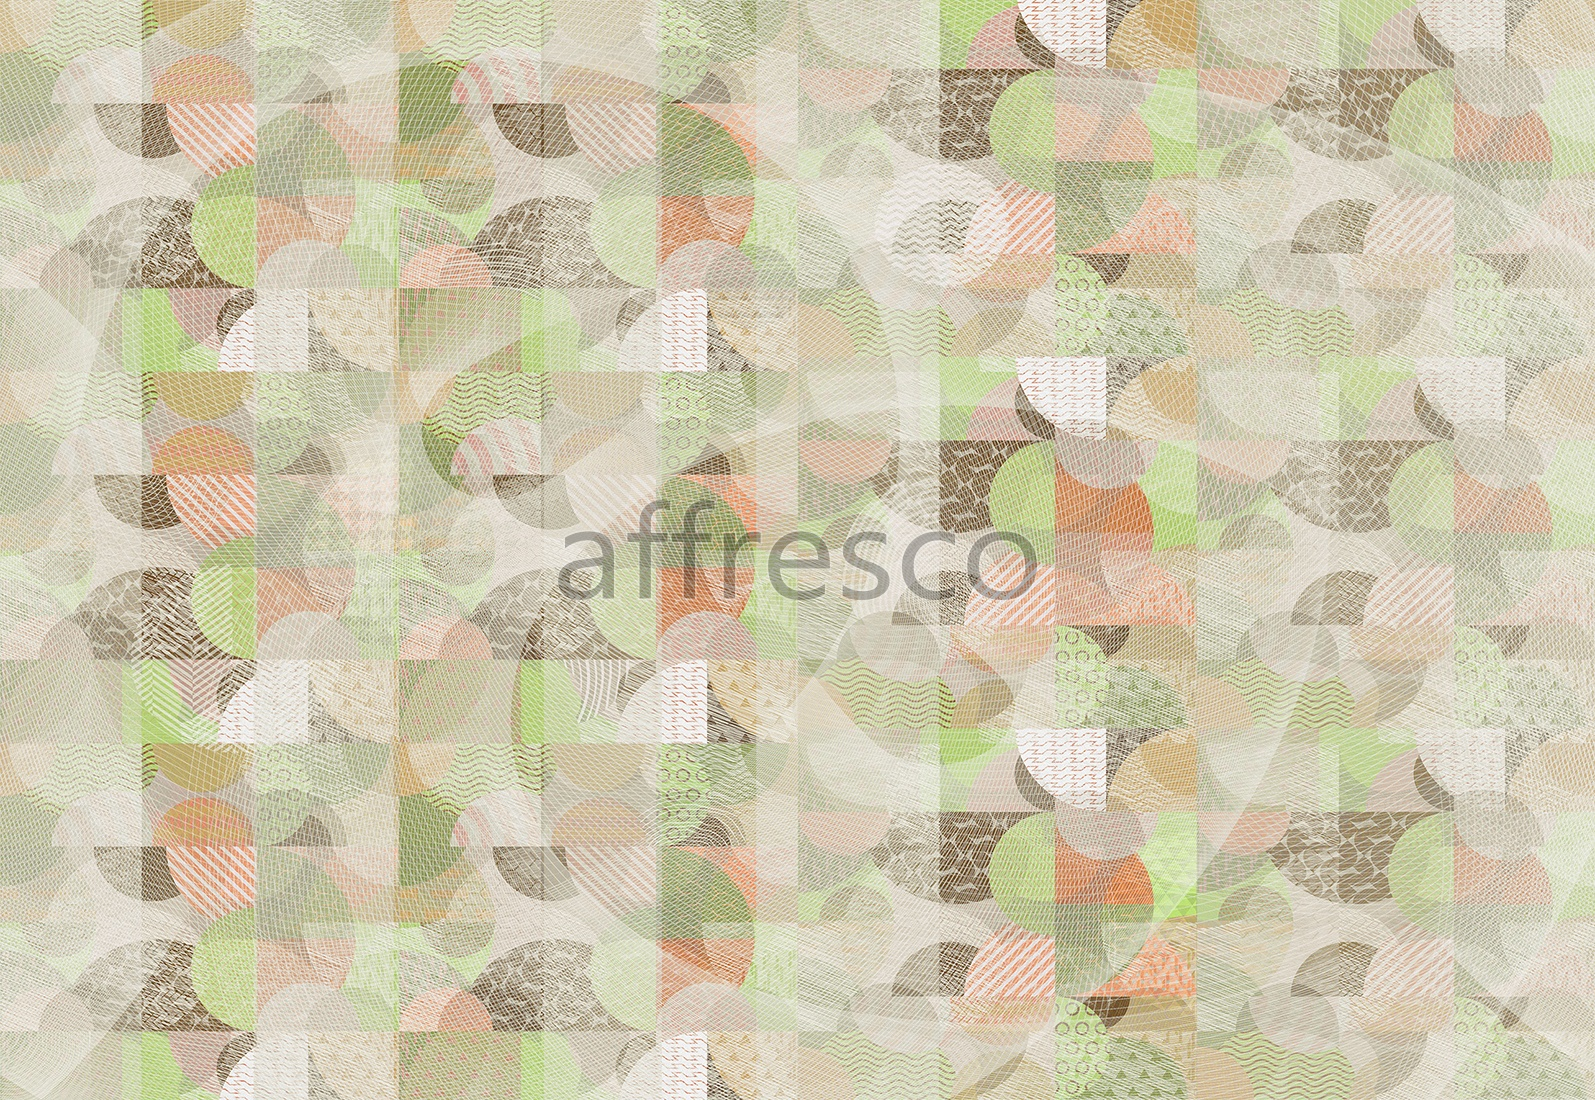 ID136314 | Geometry |  | Affresco Factory